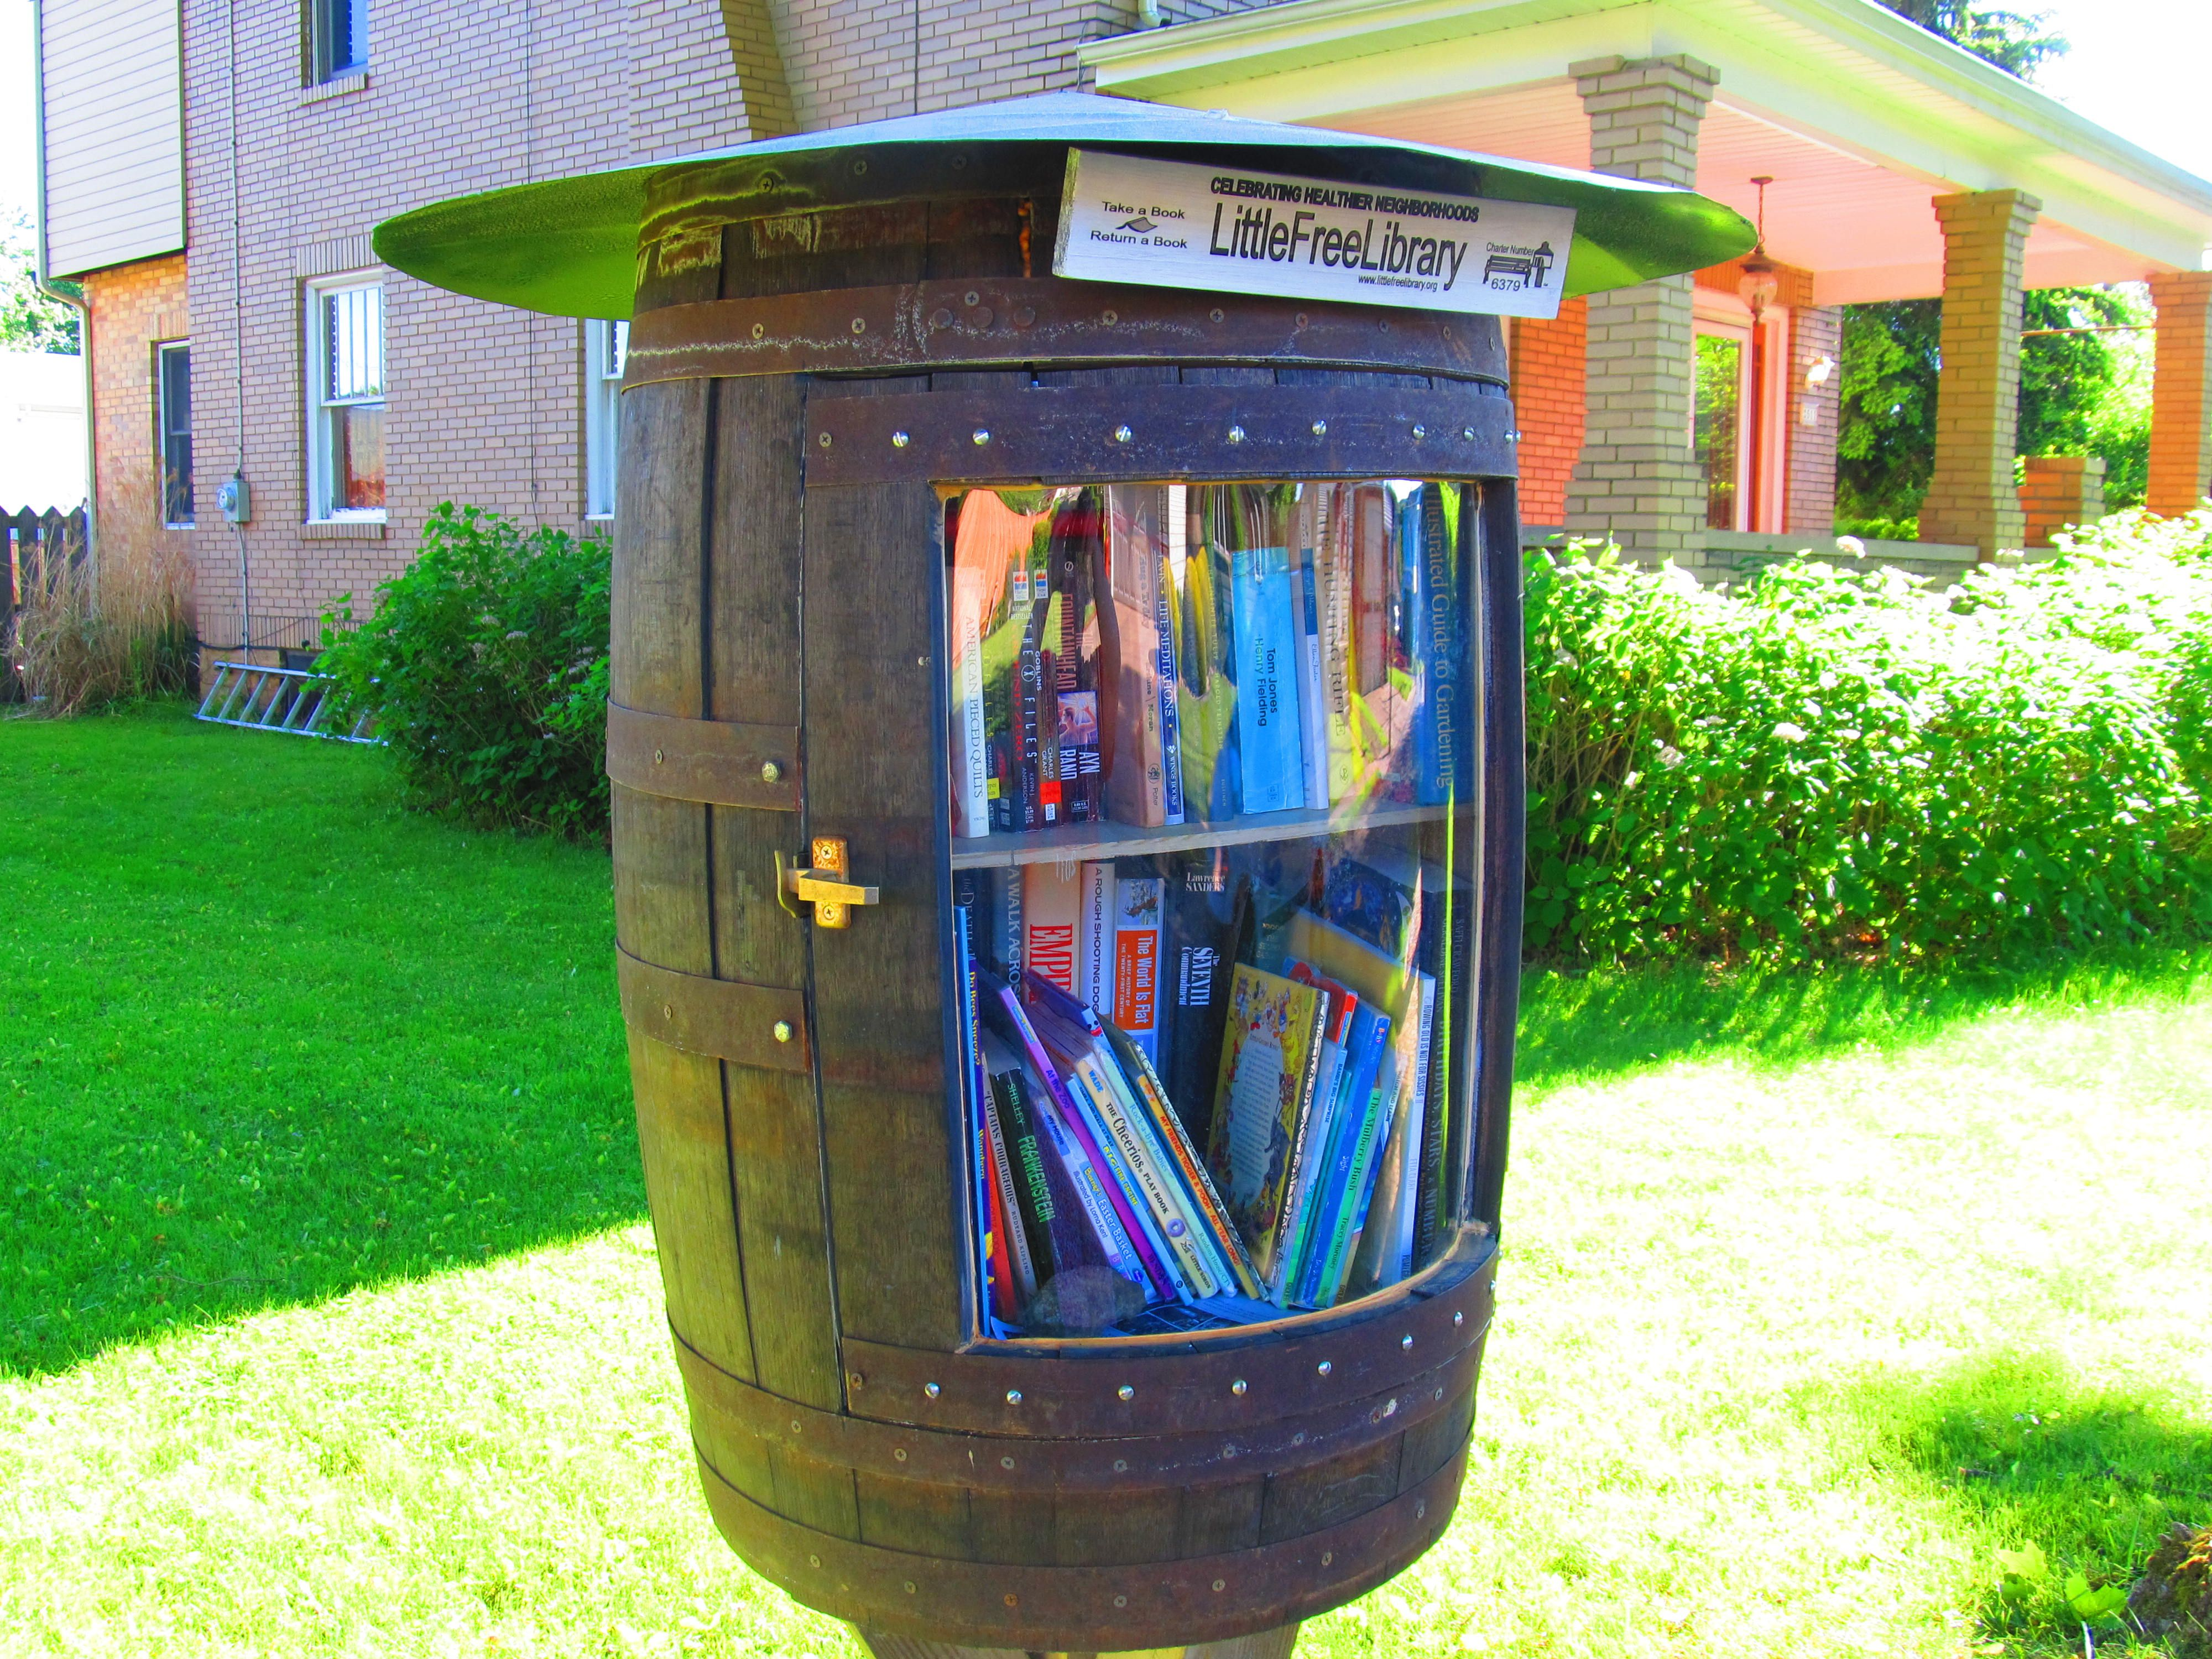 Joyce Graham. Clearfield, PN. This Little Free Library has been very well received in the neighborhood. I have been telling everybody that I run into about it! Yesterday at a yard sale I mentioned my LFL to a woman and she gave me all of the books that she had out for sale. She said that she would gladly support anybody that is promoting literacy and community.  This has been a wonderful experience. I hope to make this a success. Thank you so much for the inspiration and for the support!